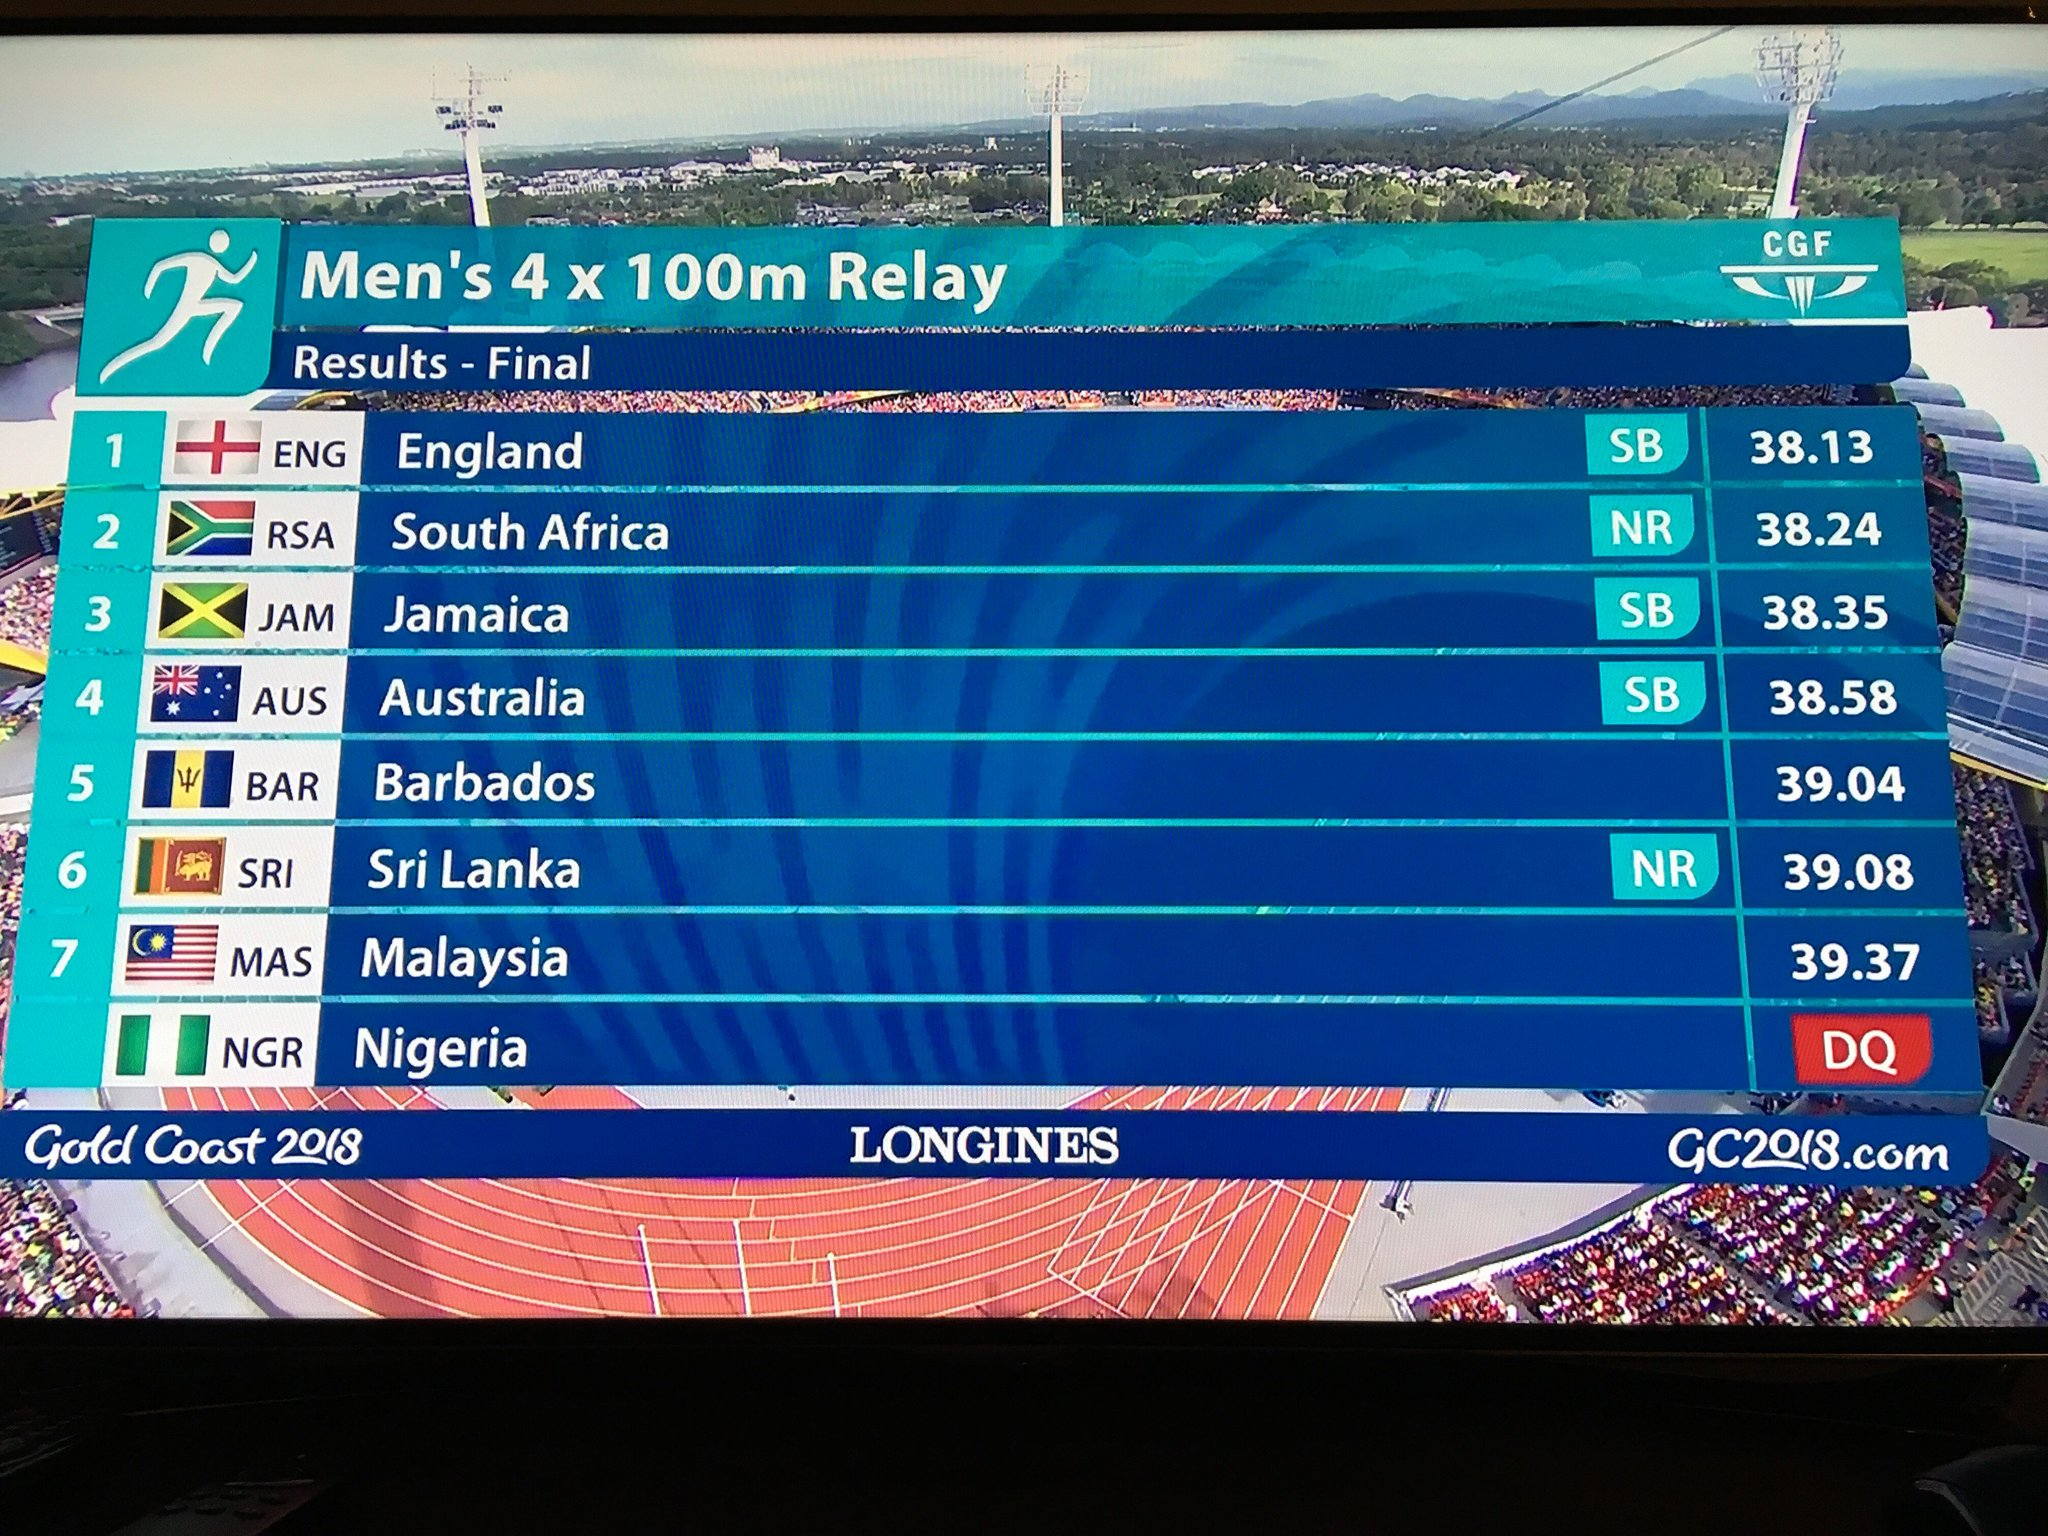 England wins the men's 4x100m Relay in 38.13 ahead of #SouthAfrica team who sets a new NATIONAL RECORD of 38.24. Great work from @AkaniSimbine to pull the team ahead of Yohan Blake. Jamaica picks bronze in 38.35. Nigeria was Disqualified.  #GC2018 #GC2018Athletics https://t.co/rD8ZvtHkIv